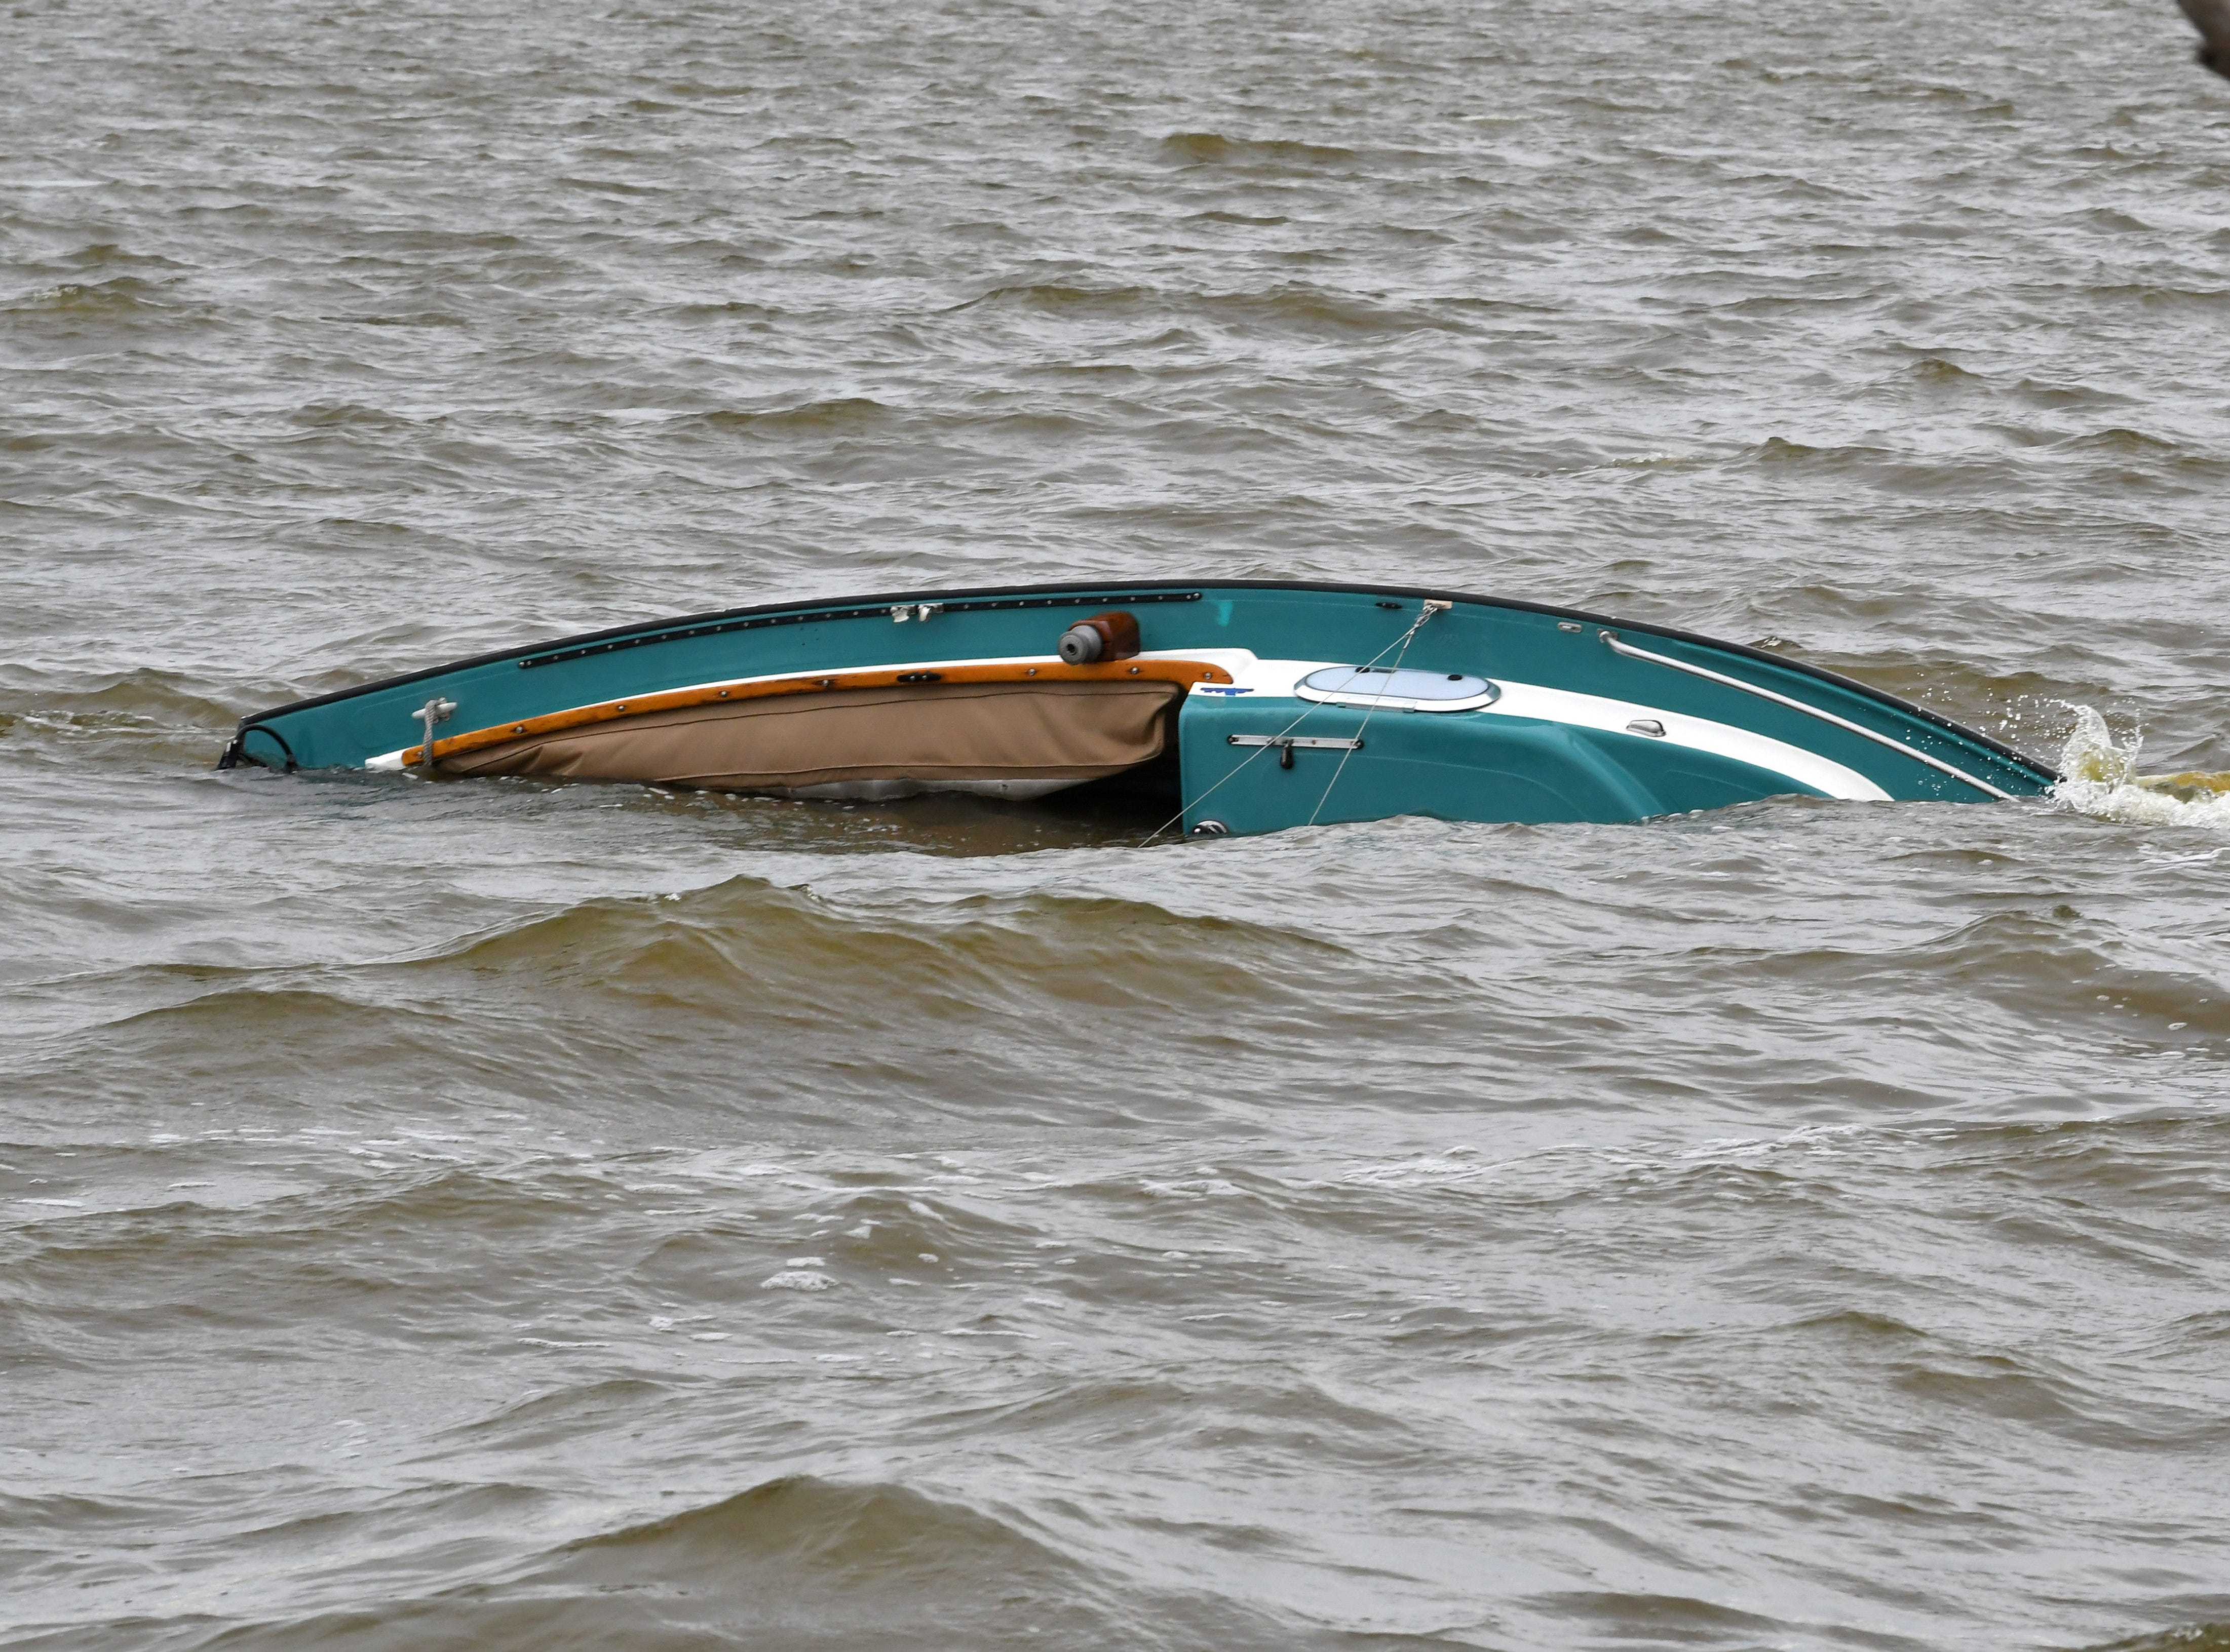 A 20-foot sailboat overturned  in the Banana River near Merritt island ion Sunday. All four men aboard were rescued and uninjured. The capsized craft drifted closer to shore near State Road 528.